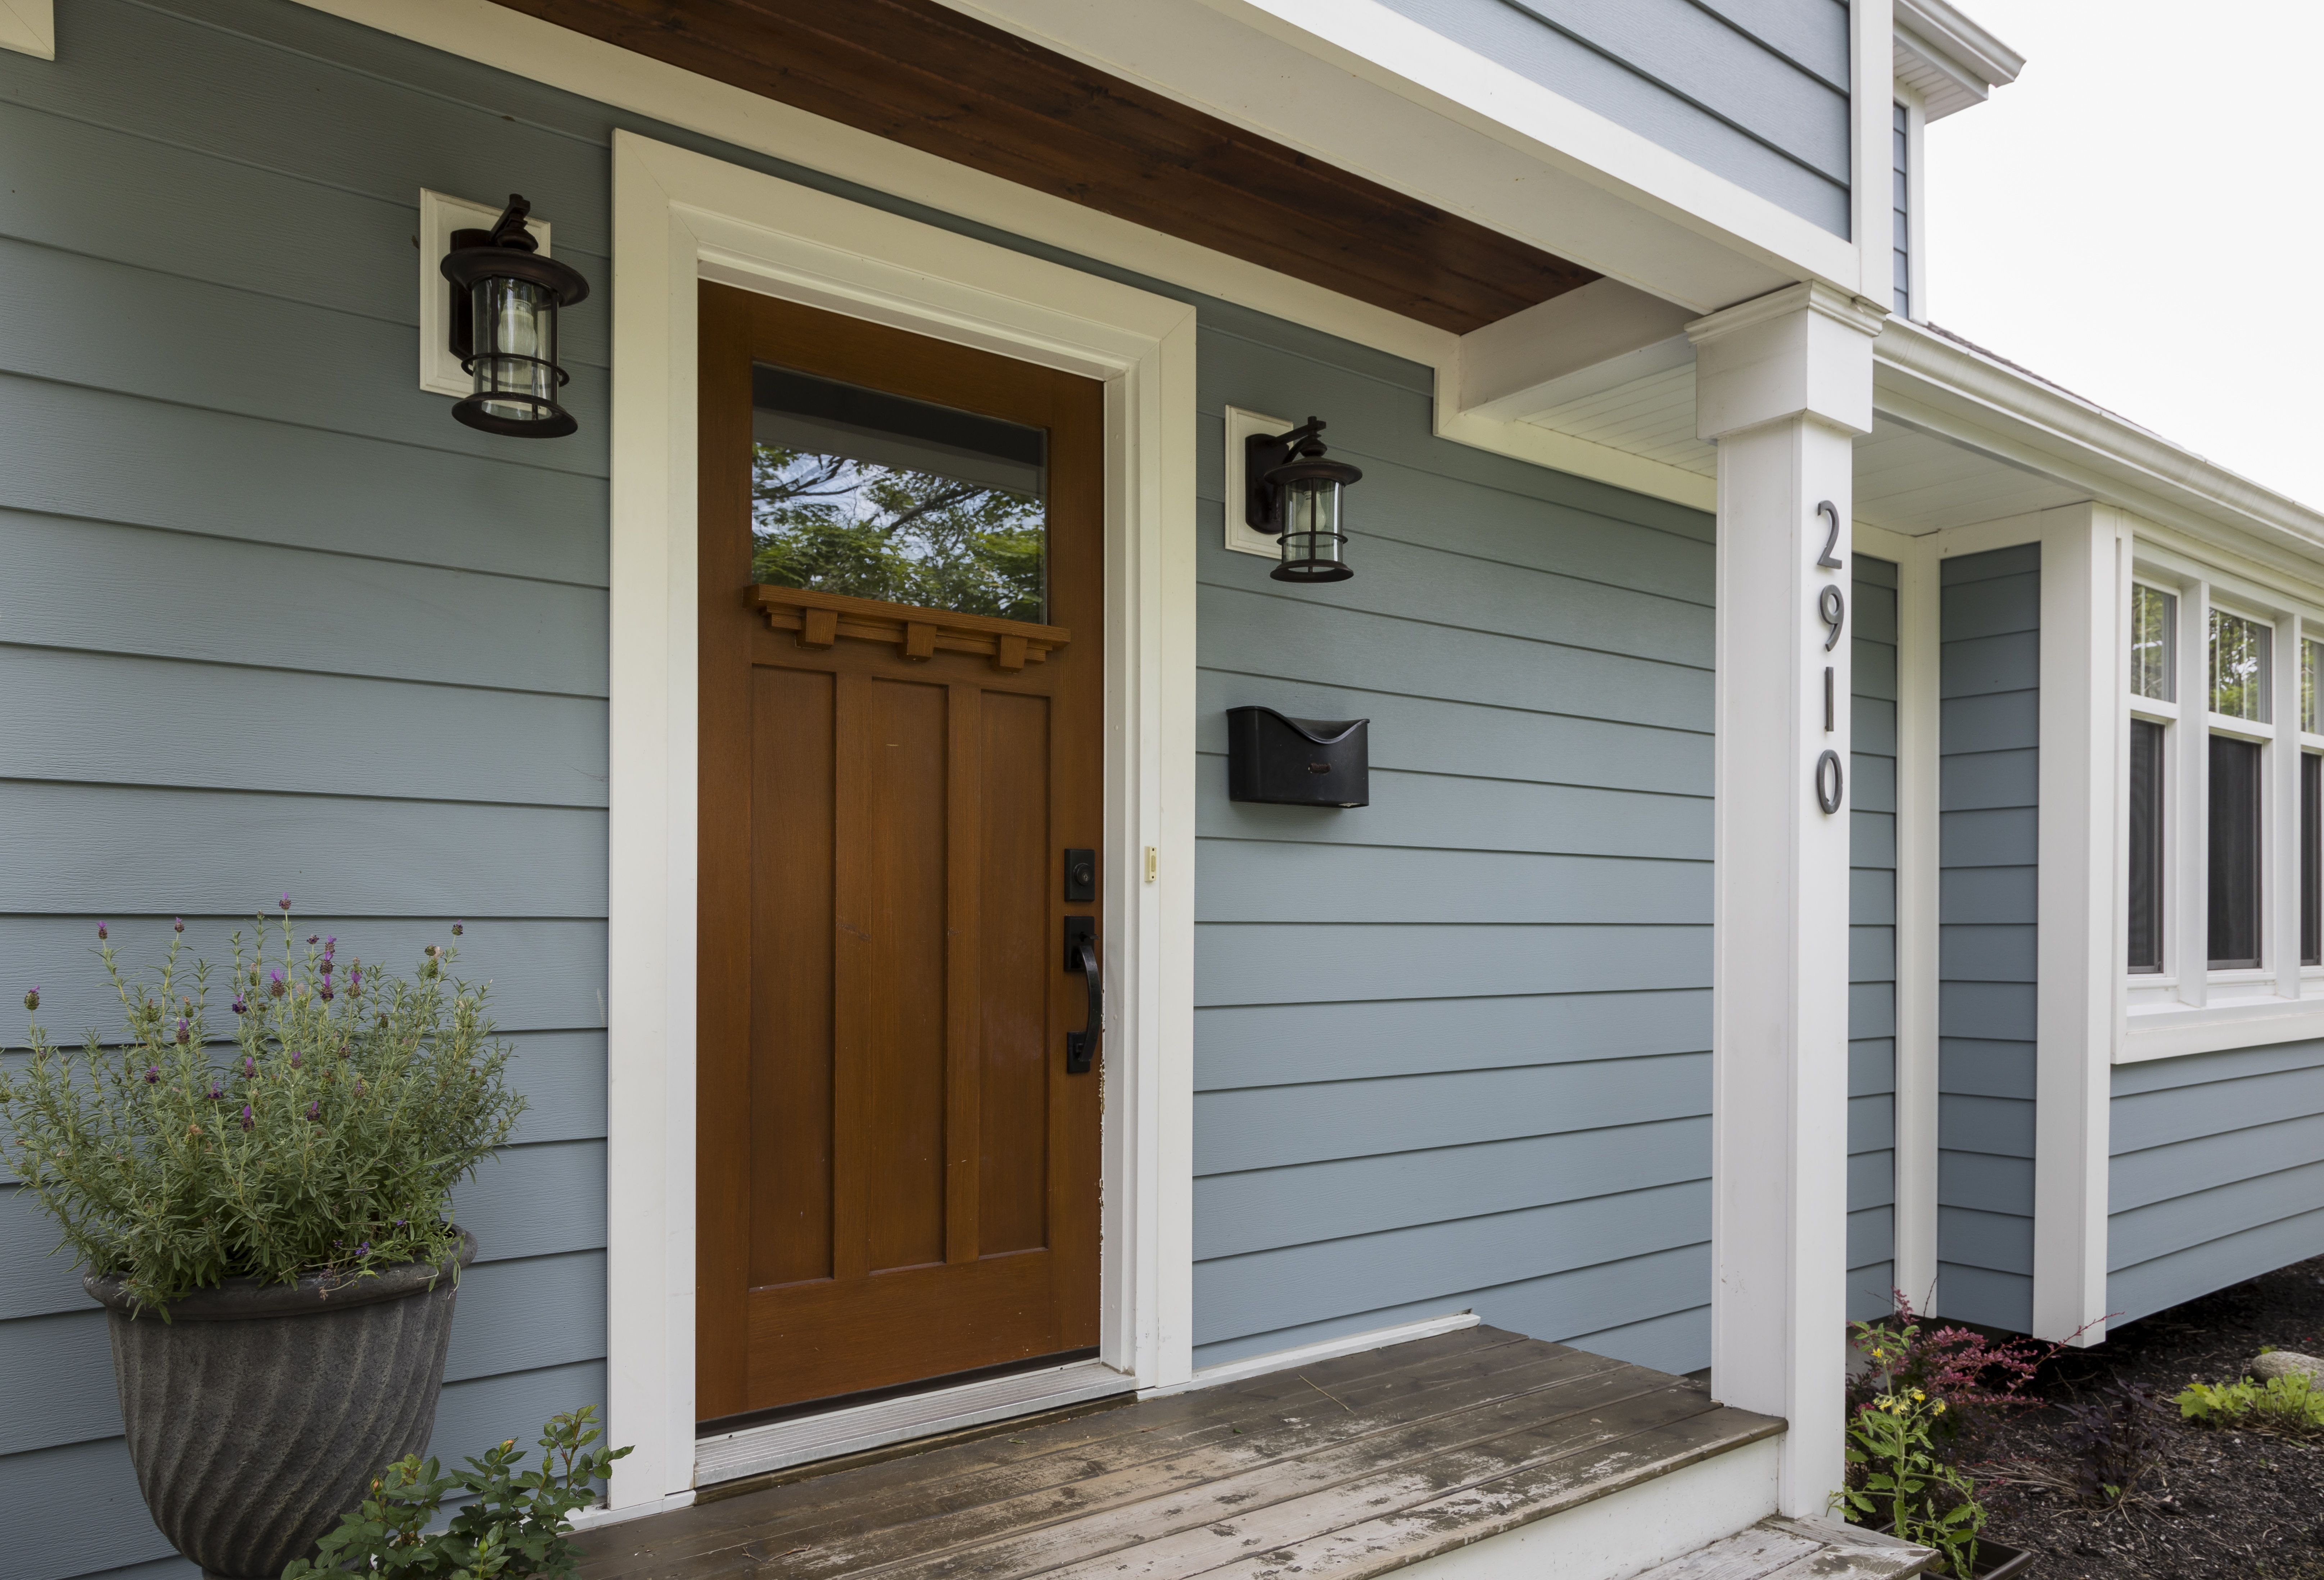 Celect 7 Clapboard Siding In Oceana House Paint Exterior Exterior Paint Colors For House Exterior House Colors